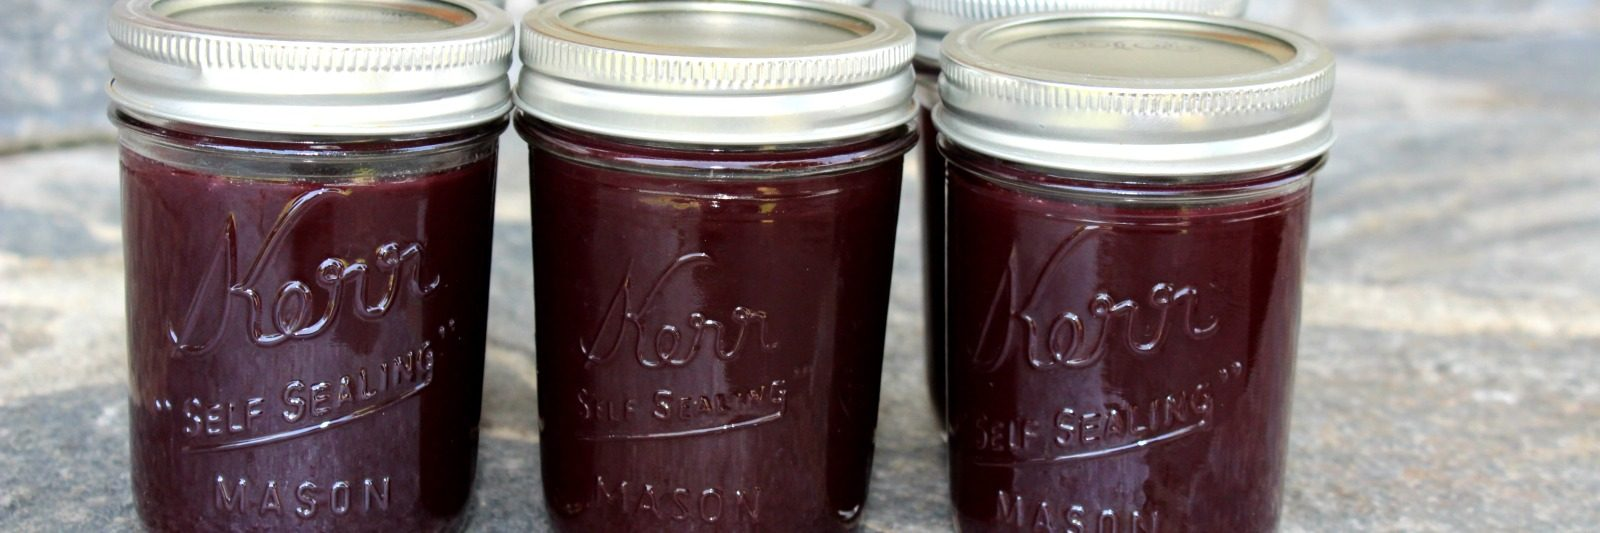 How to can preserve dehydrate and ferment food